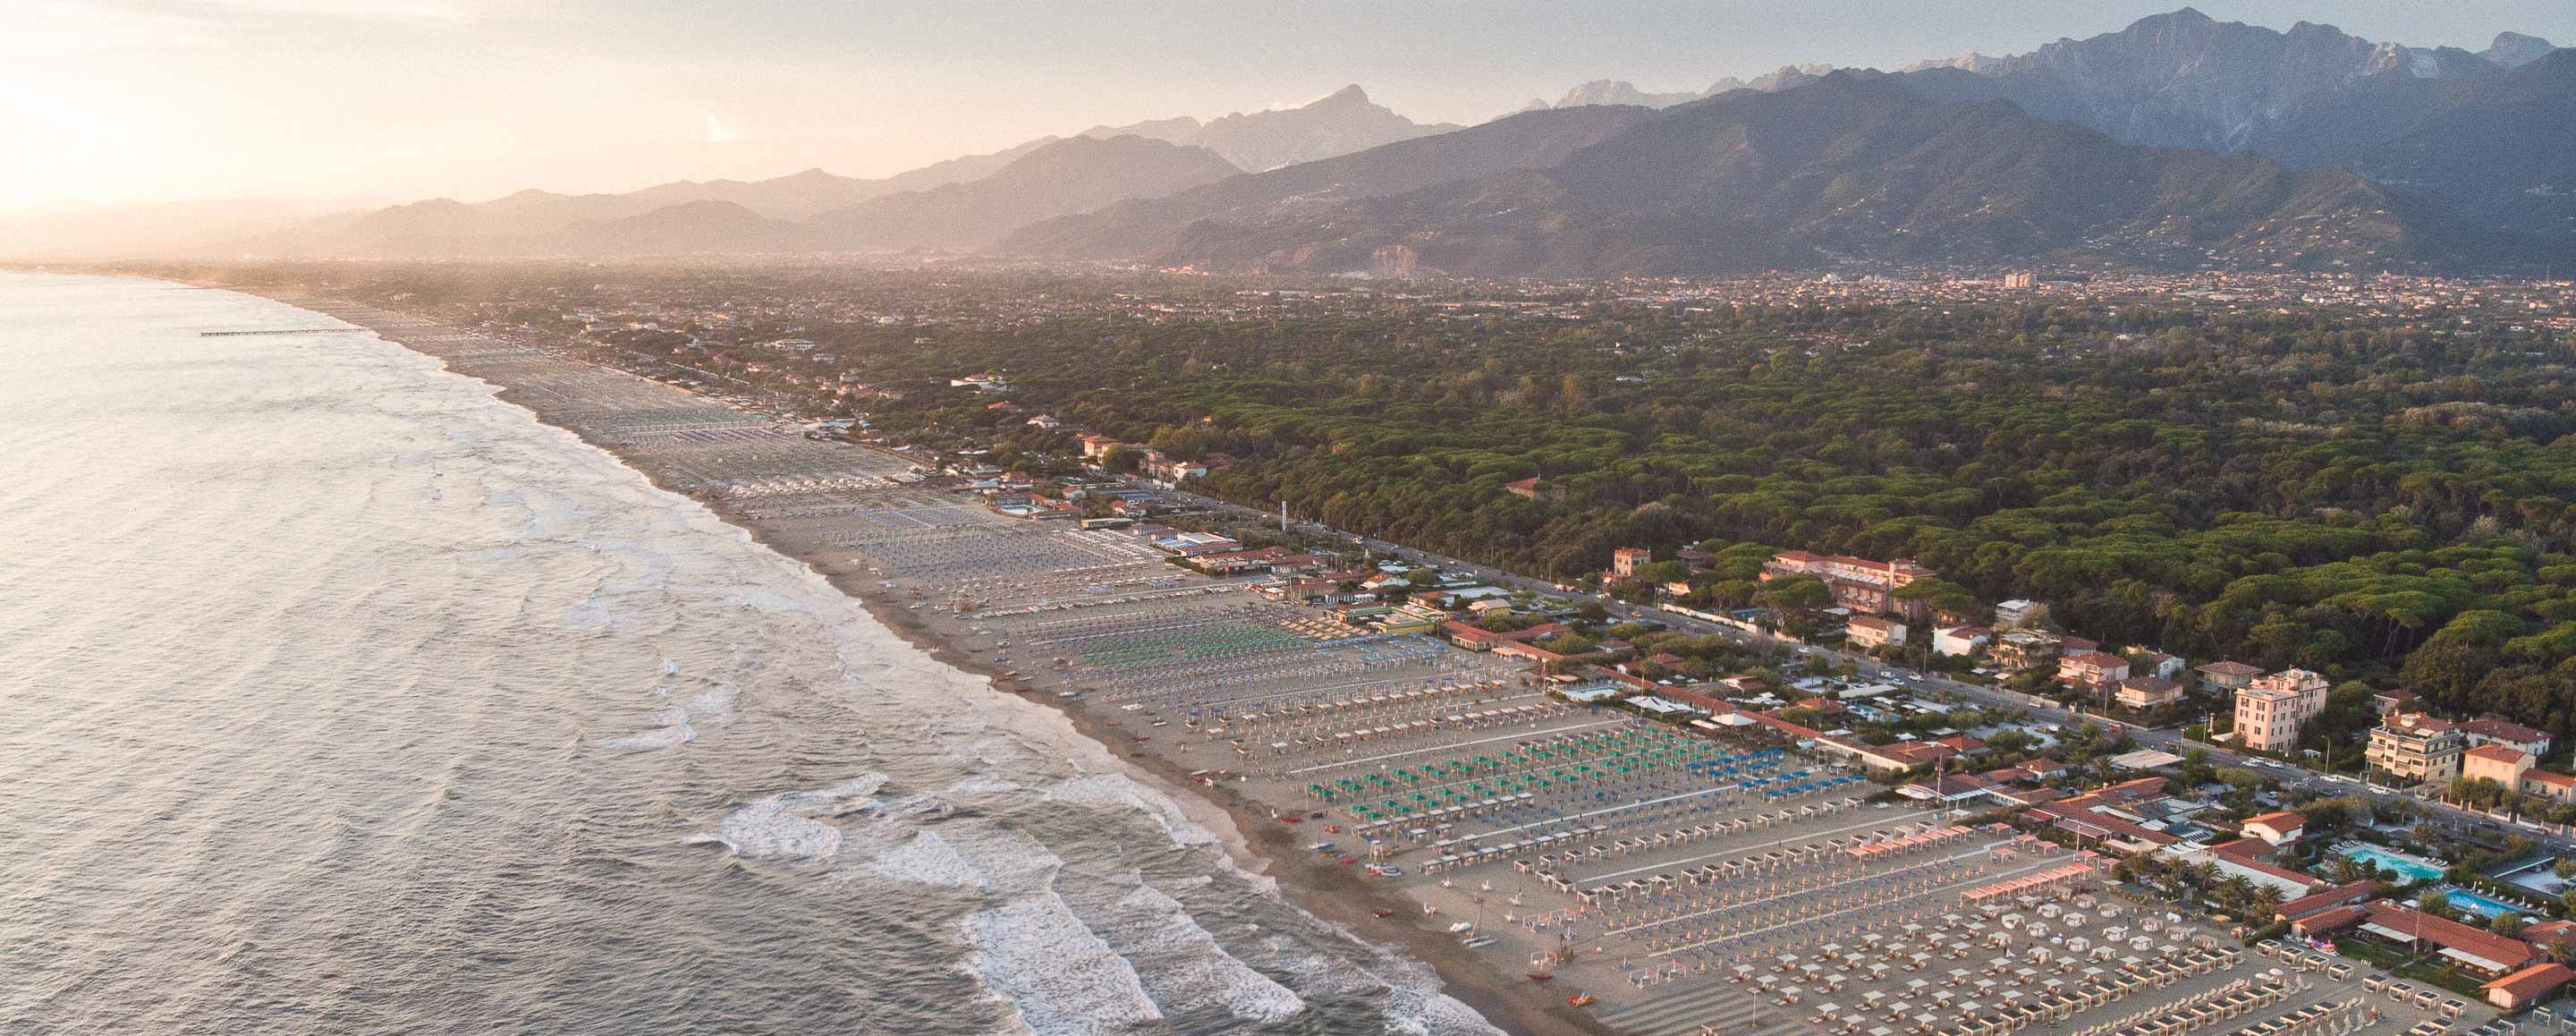 Italian Case Forte Dei Marmi forte dei marmi weddings // the wedding blog // facibeni